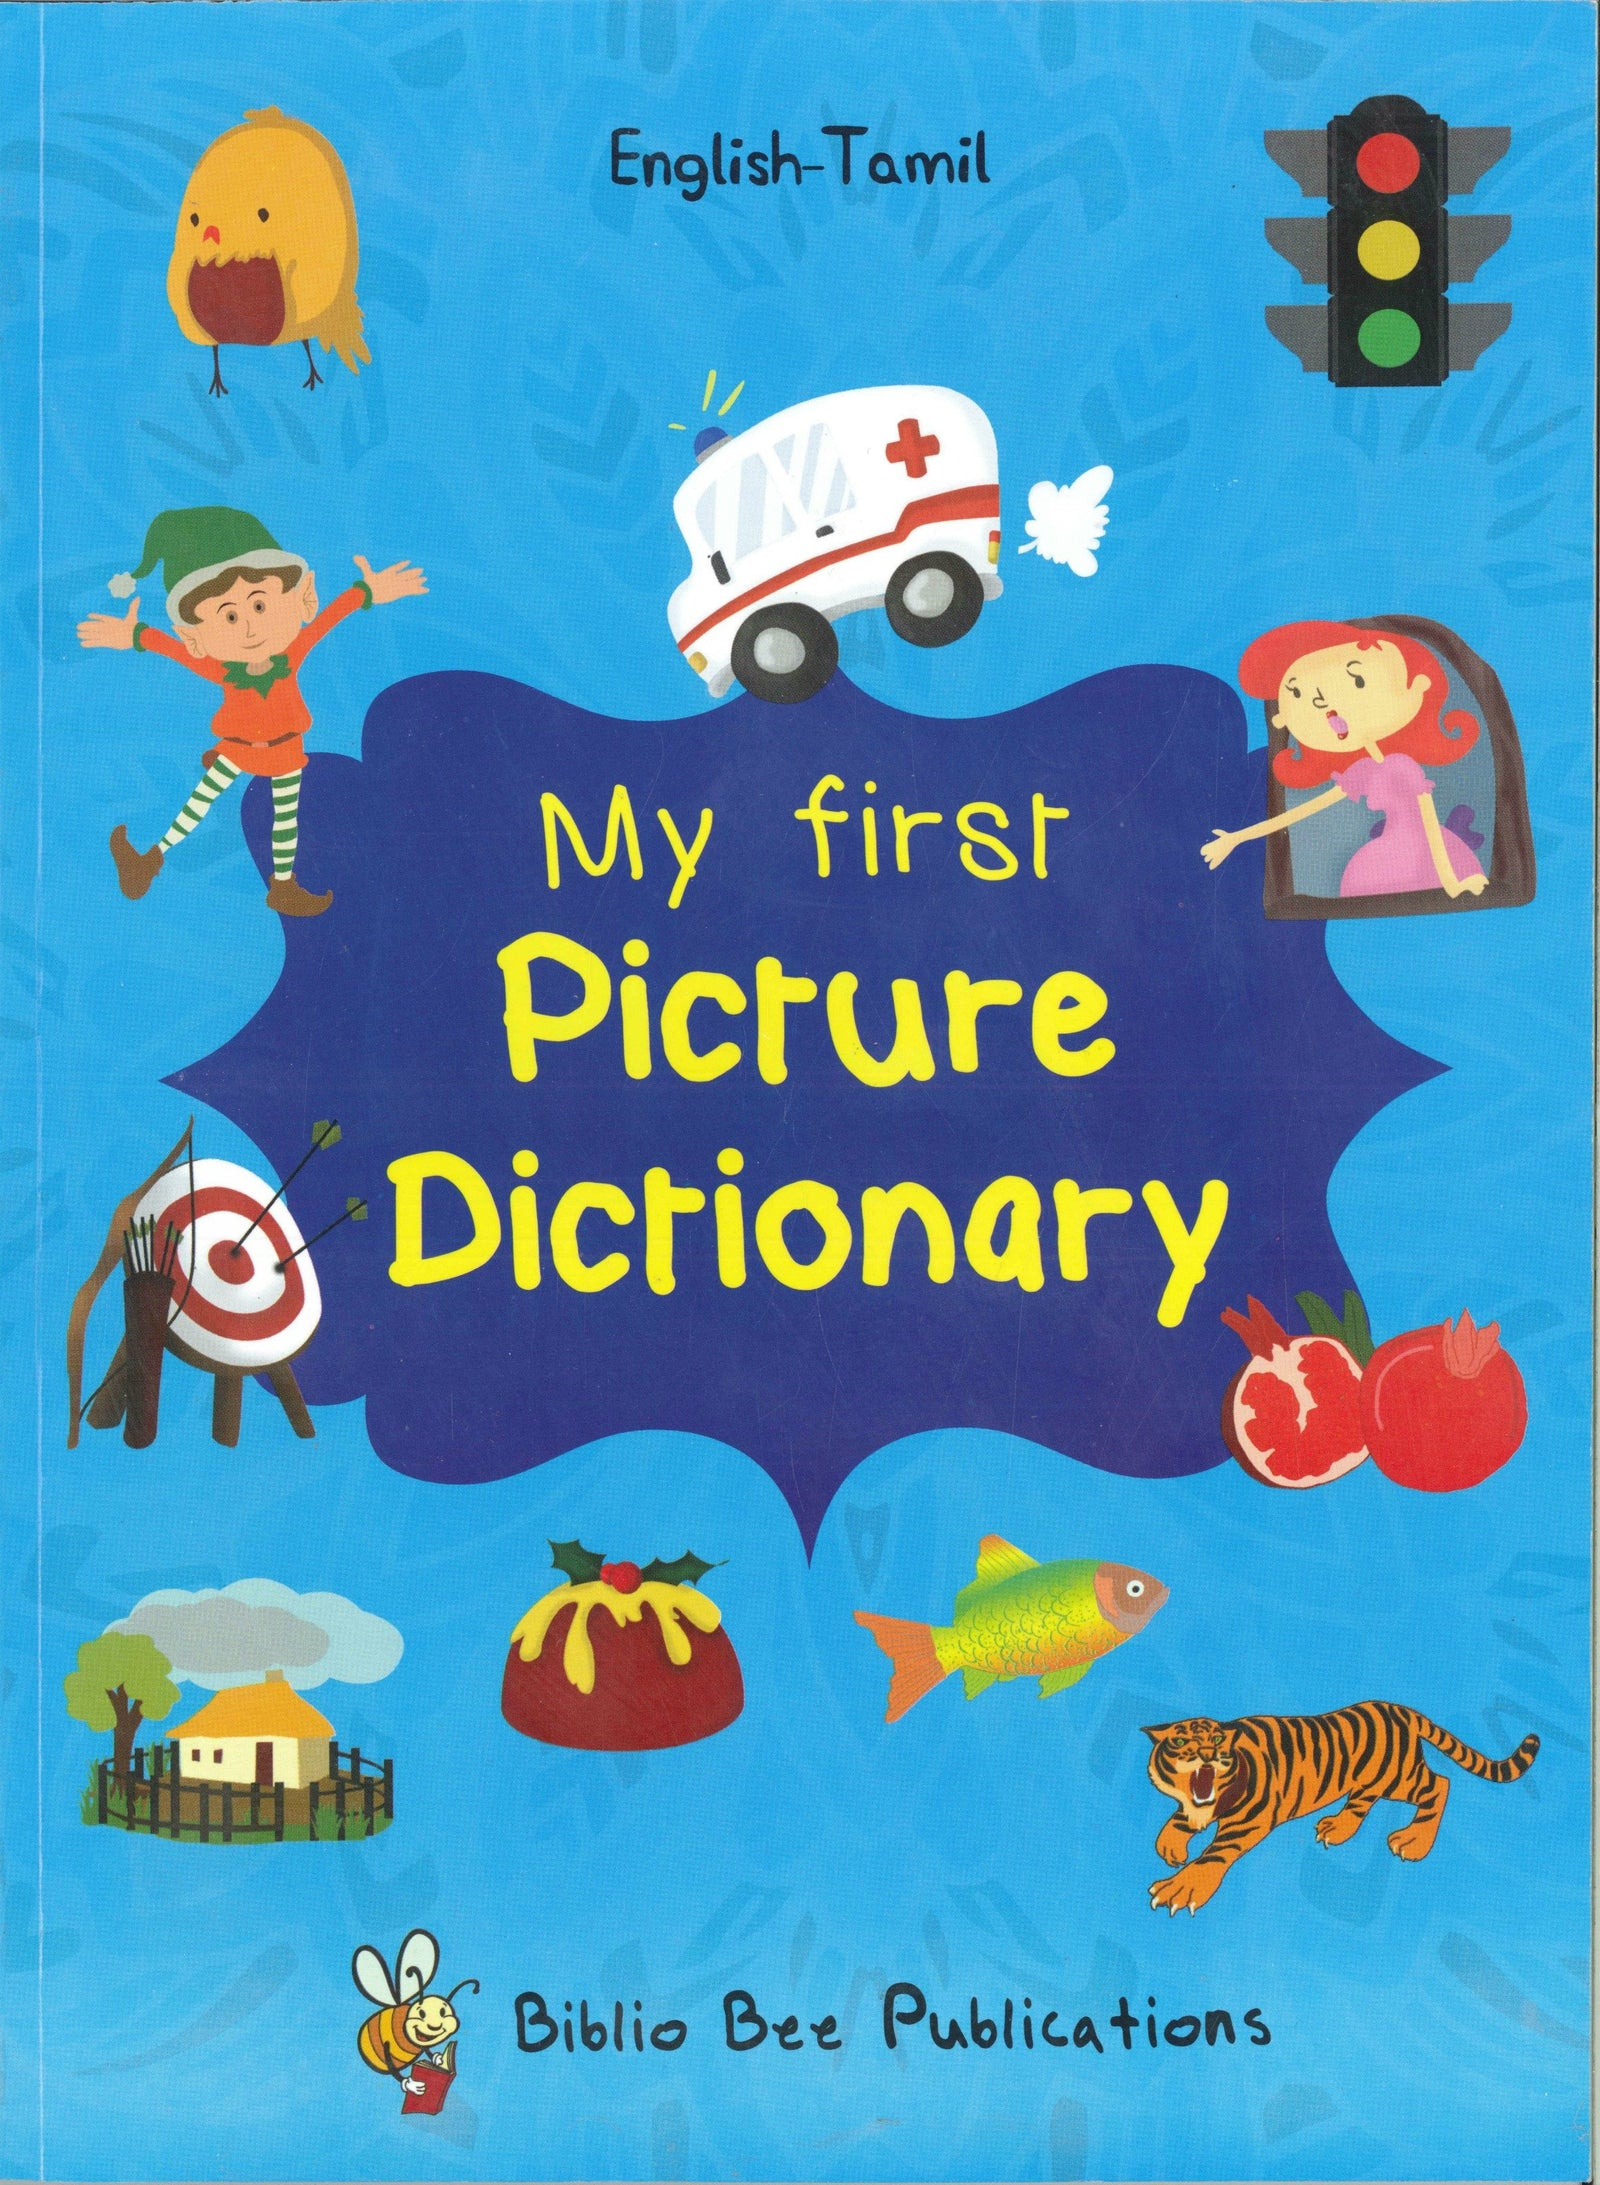 My First Picture Dictionary: English-Tamil 9781908357908 - front cover